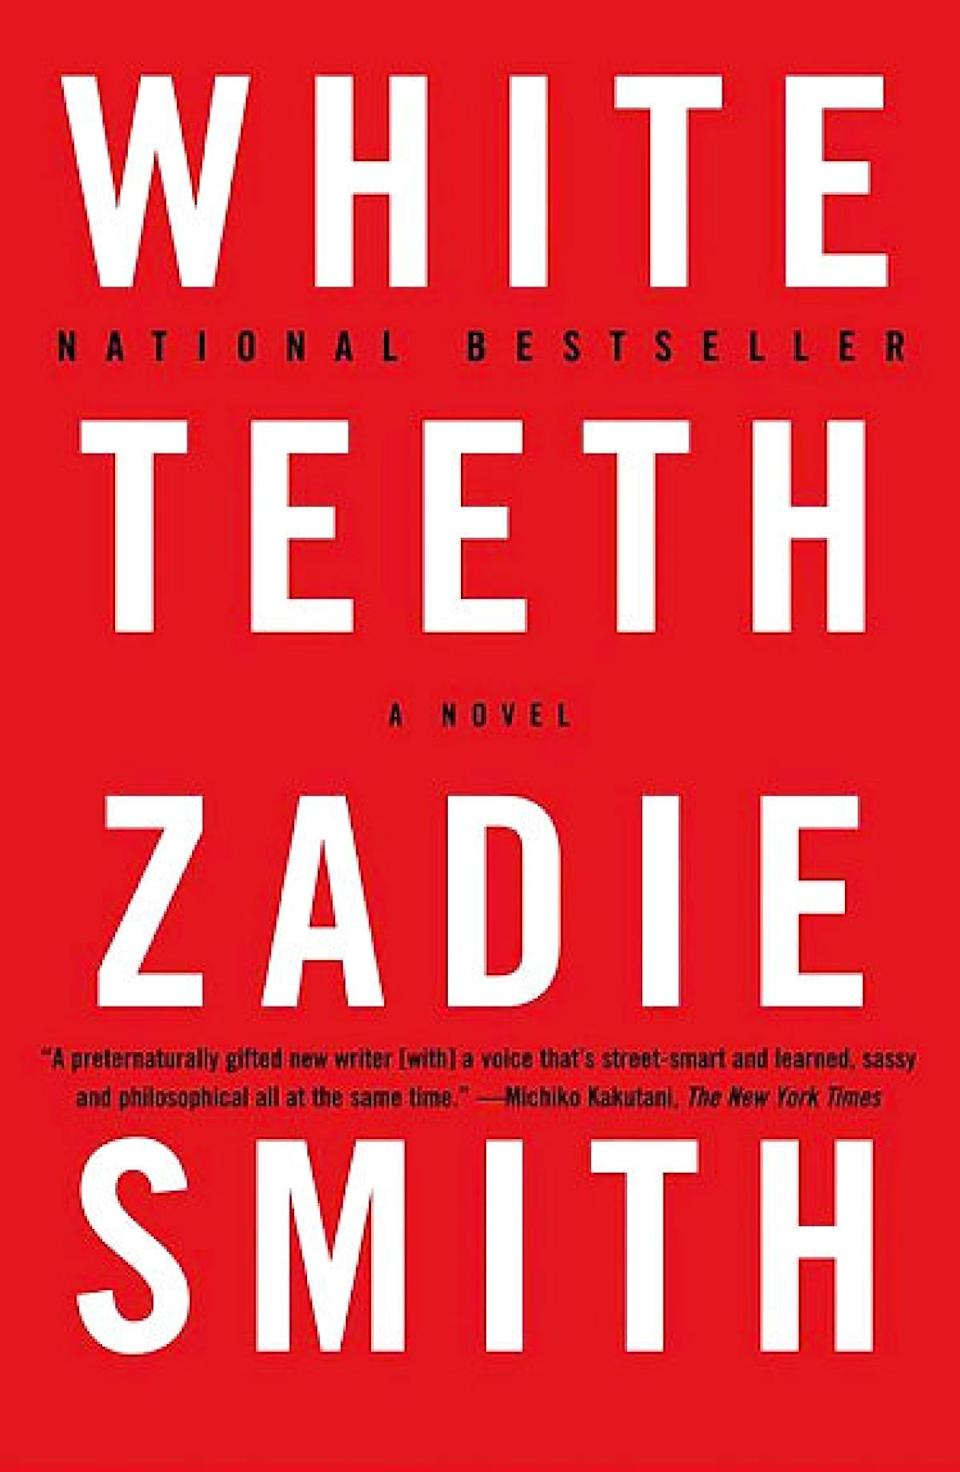 "<p><a href=""https://www.popsugar.com/buy?url=https%3A%2F%2Fwww.amazon.com%2FWhite-Teeth-Novel-Zadie-Smith%2Fdp%2F0375703861%2Fref%3Dtmm_pap_swatch_0%3F_encoding%3DUTF8%26qid%3D1488995990%26sr%3D1-1&p_name=%3Cb%3EWhite%20Teeth%3C%2Fb%3E%20by%20Zadie%20Smith&retailer=amazon.com&evar1=tres%3Auk&evar9=43250262&evar98=https%3A%2F%2Fwww.popsugar.com%2Flove%2Fphoto-gallery%2F43250262%2Fimage%2F43278343%2FWhite-Teeth-Zadie-Smith&list1=books%2Cwomen%2Creading%2Cinternational%20womens%20day%2Cwomens%20history%20month&prop13=api&pdata=1"" class=""link rapid-noclick-resp"" rel=""nofollow noopener"" target=""_blank"" data-ylk=""slk:White Teeth by Zadie Smith""><b>White Teeth</b> by Zadie Smith</a></p>"